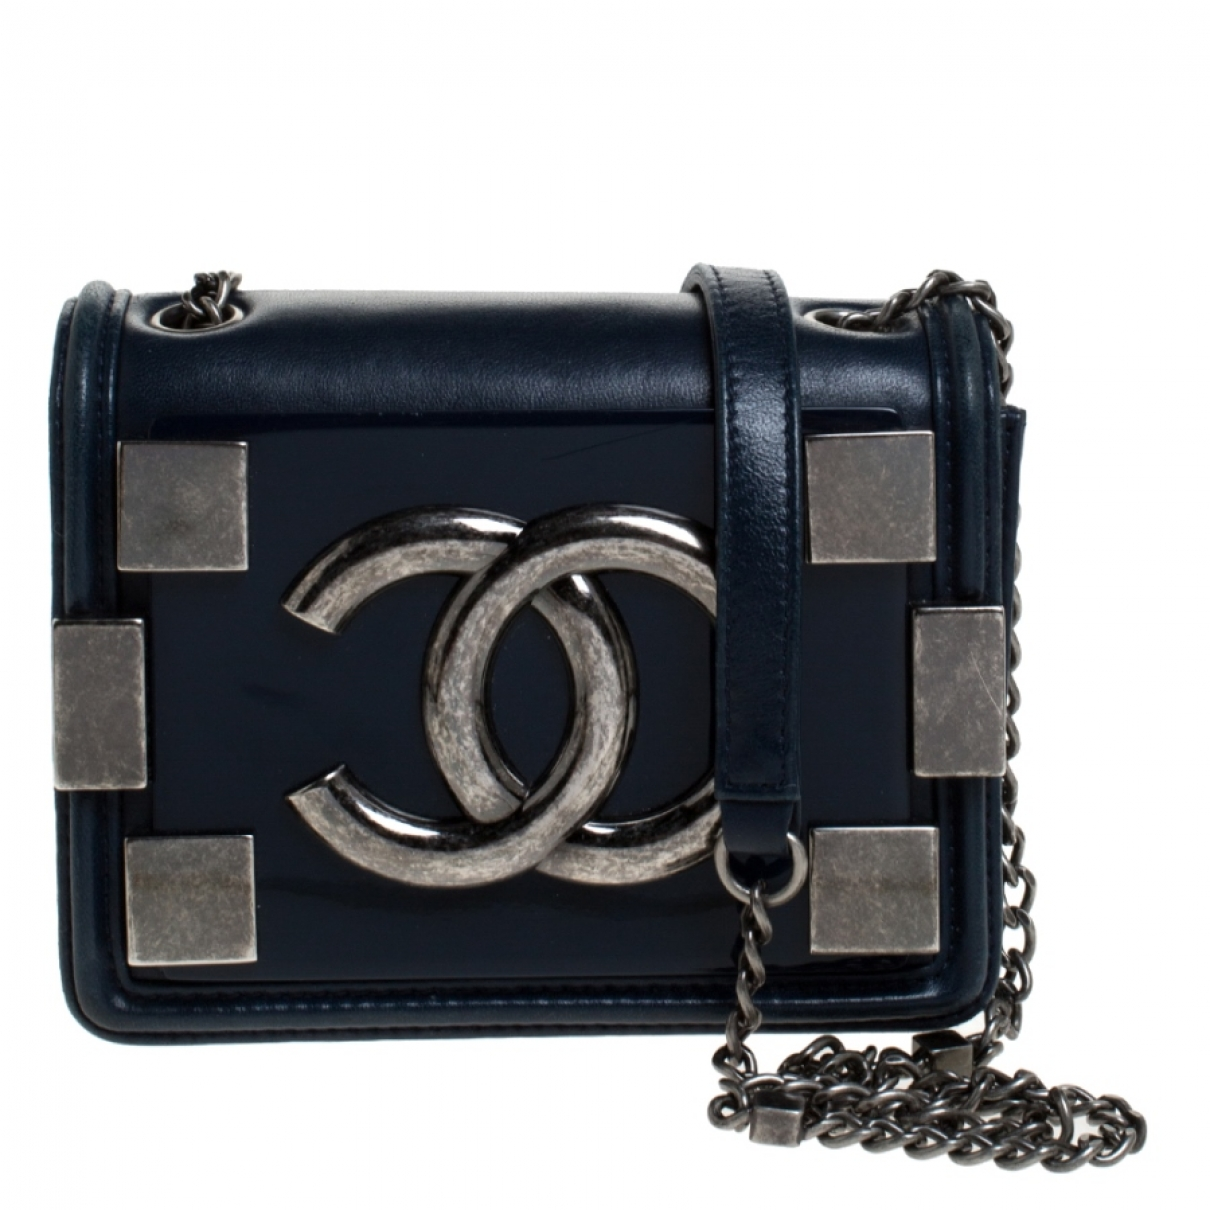 Chanel \N Blue Leather handbag for Women \N